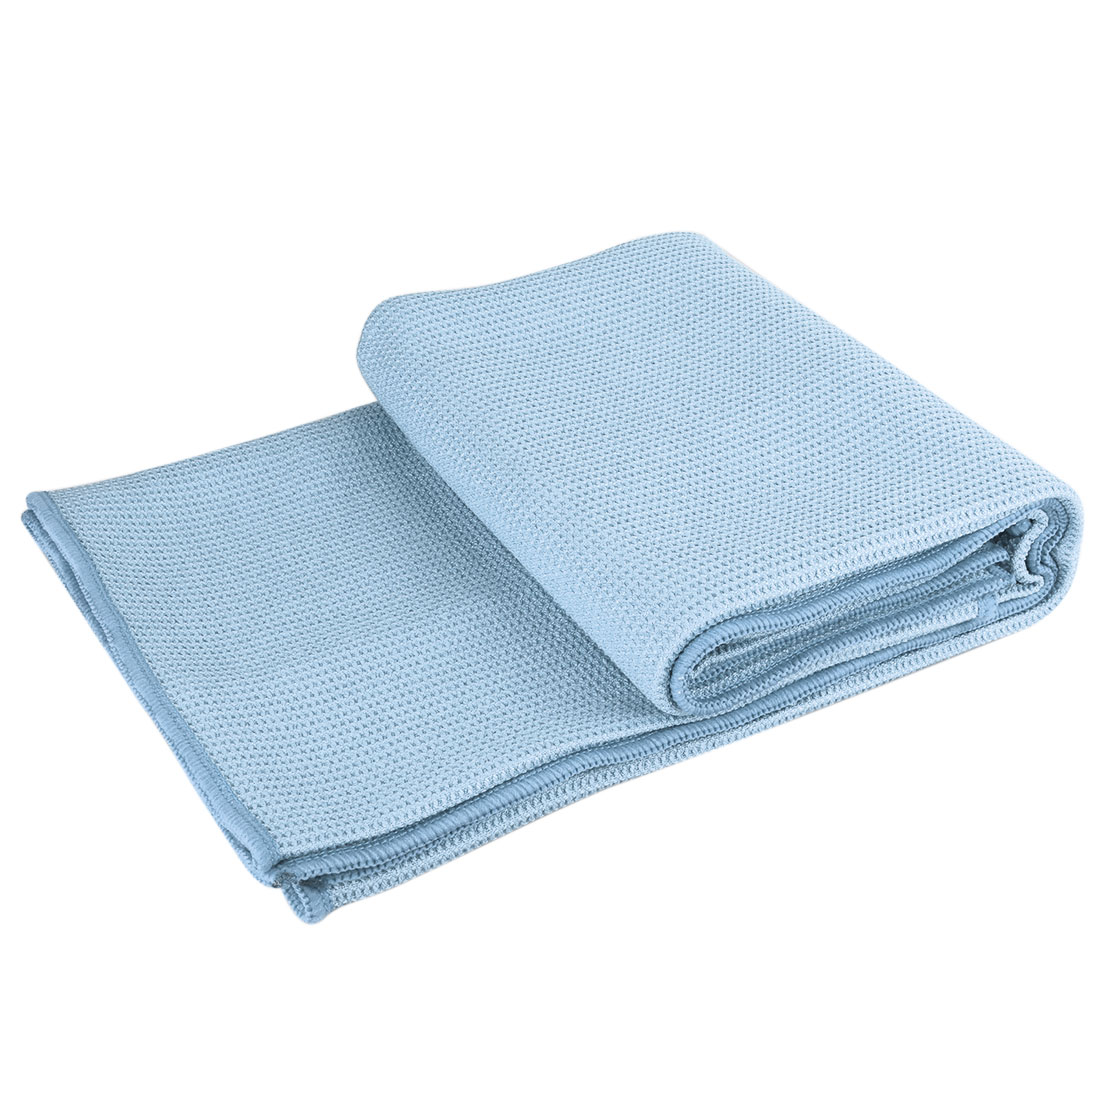 Microfiber Non Slip Hot Yoga Towels With Pockets, Sweat Absorbent, 72 X 25 inch, Light Blue